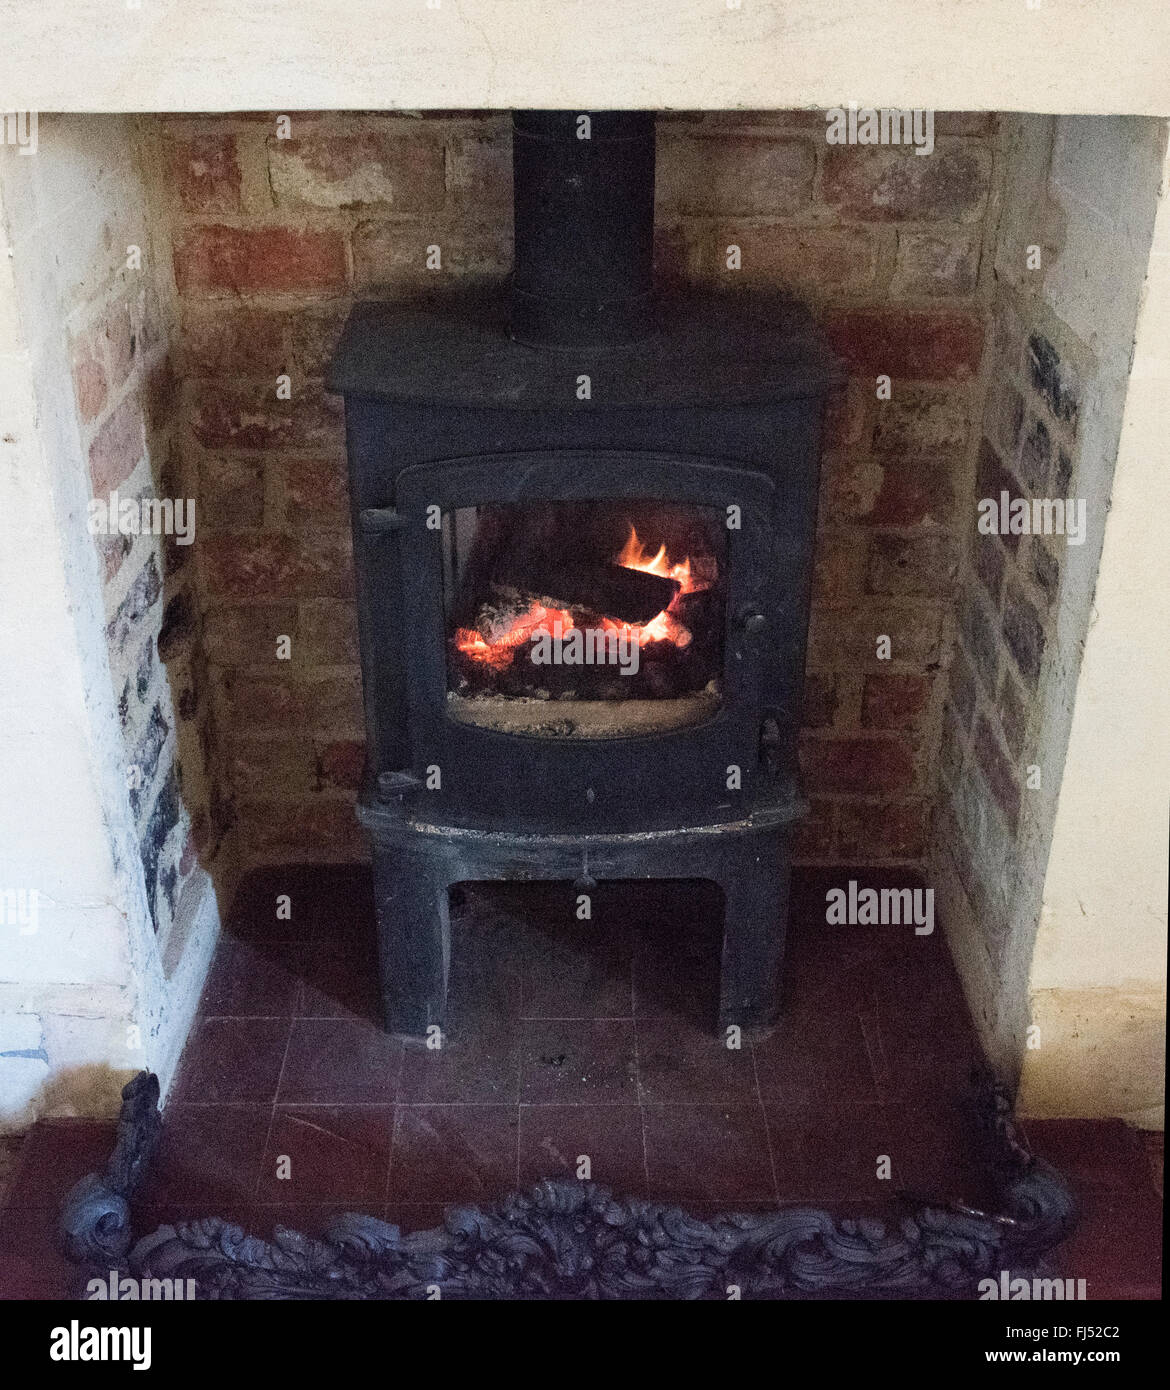 fireplace black brick old burnt smoke free heat close coal wood fire flame glow log light sparks energy old domestic - Stock Image